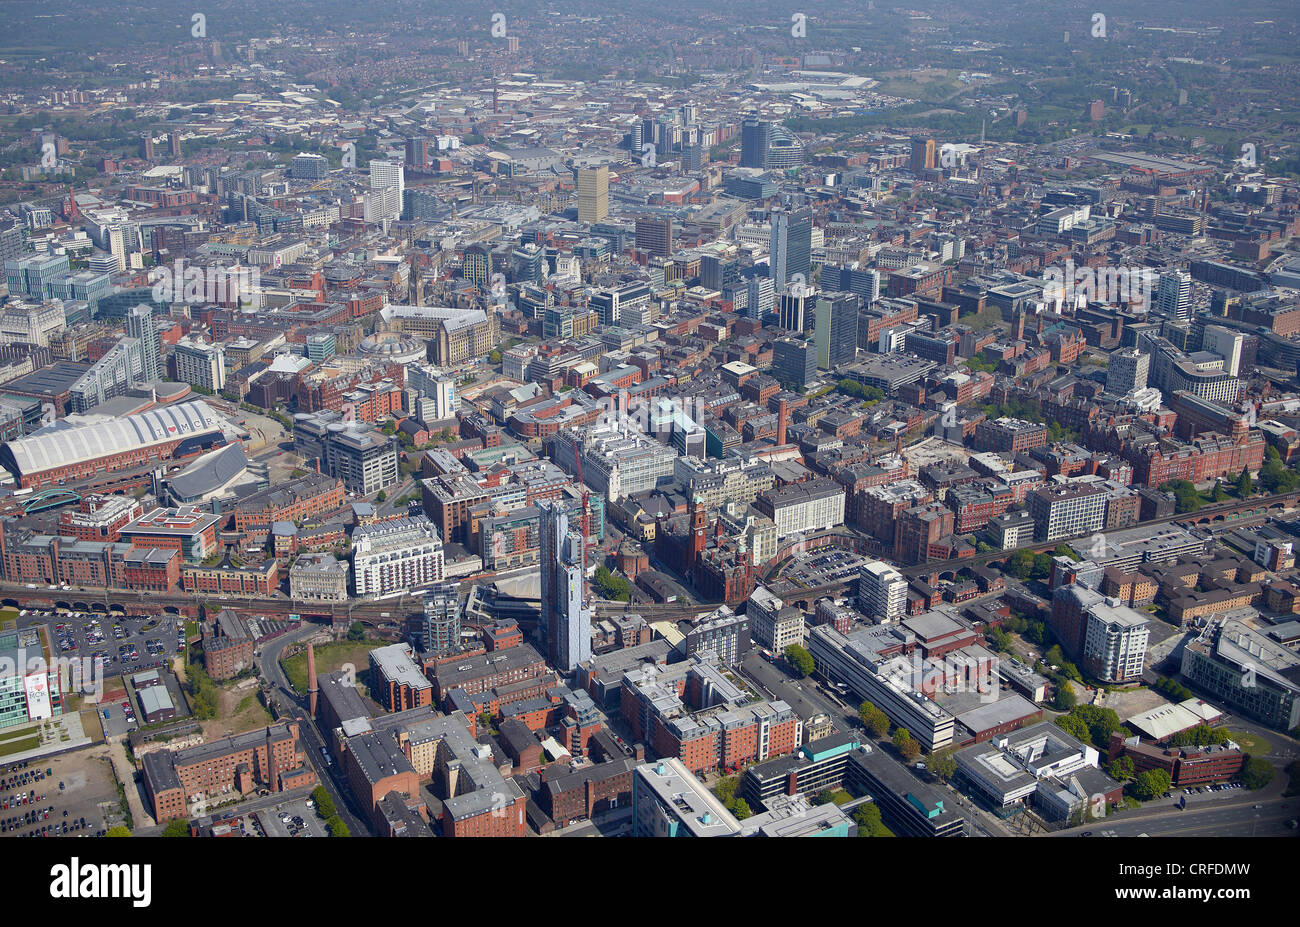 Manchester City Centre, from the air, North West England Stock Photo